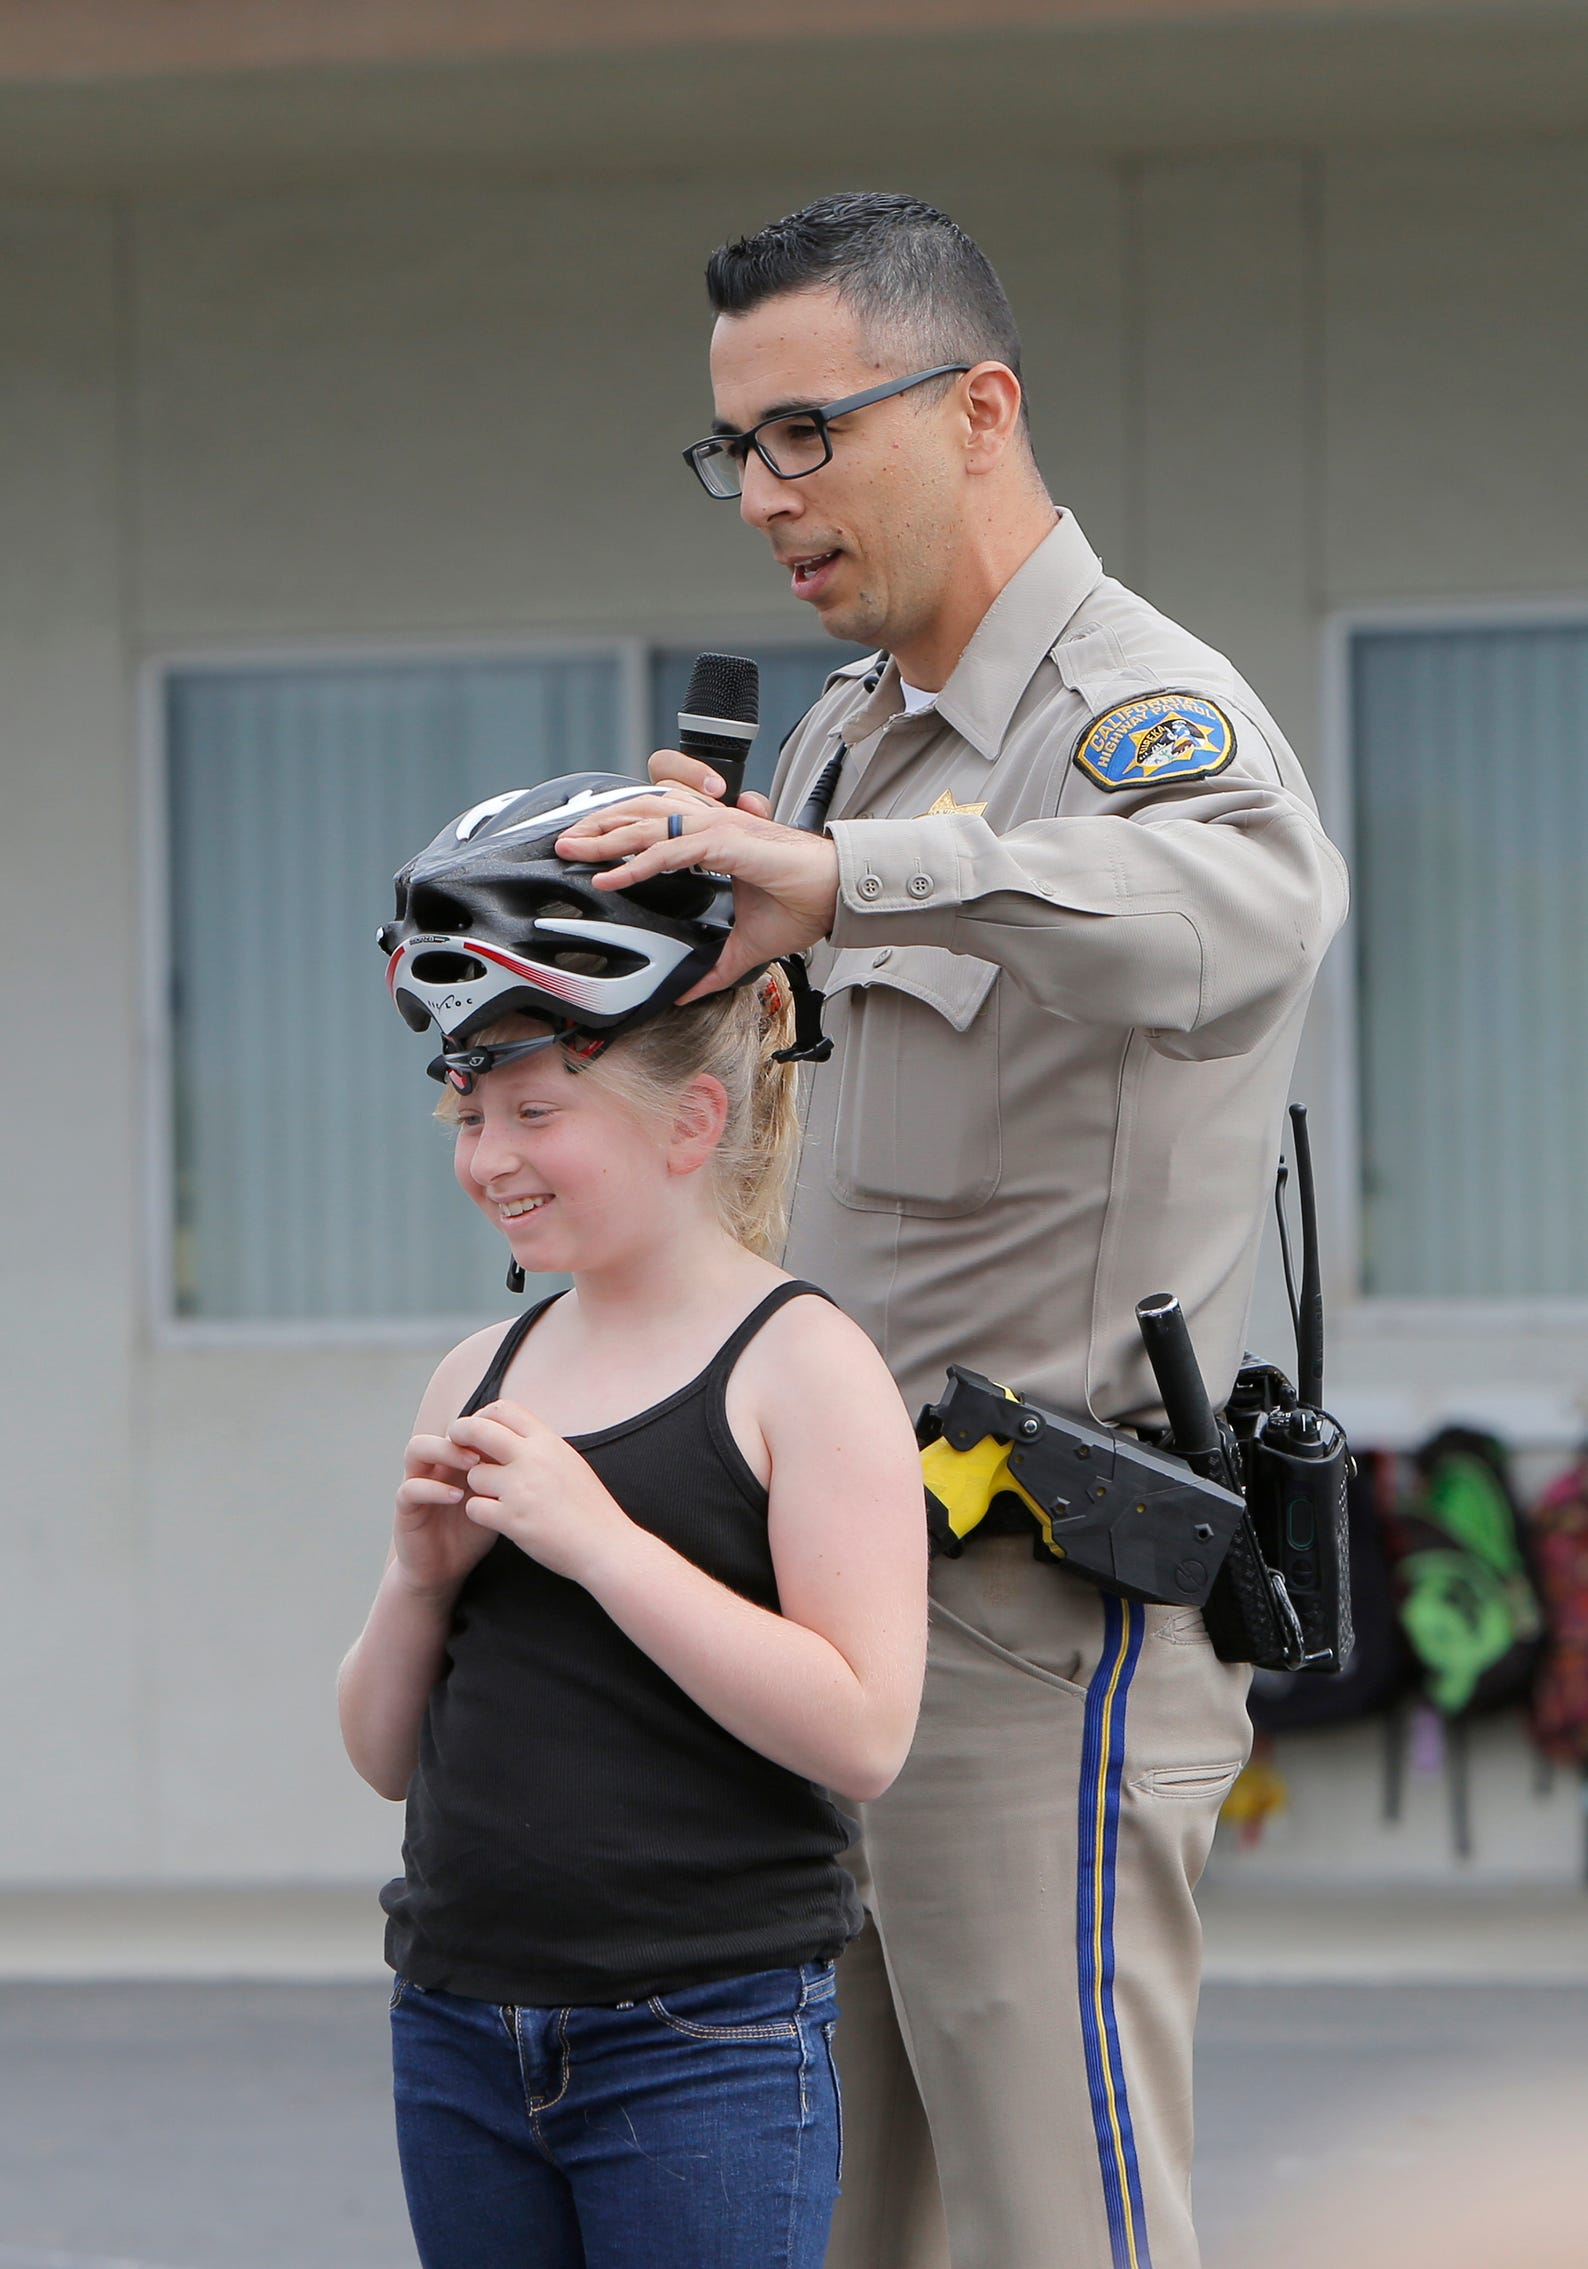 These Simi Valley kids got a lesson in bike safety